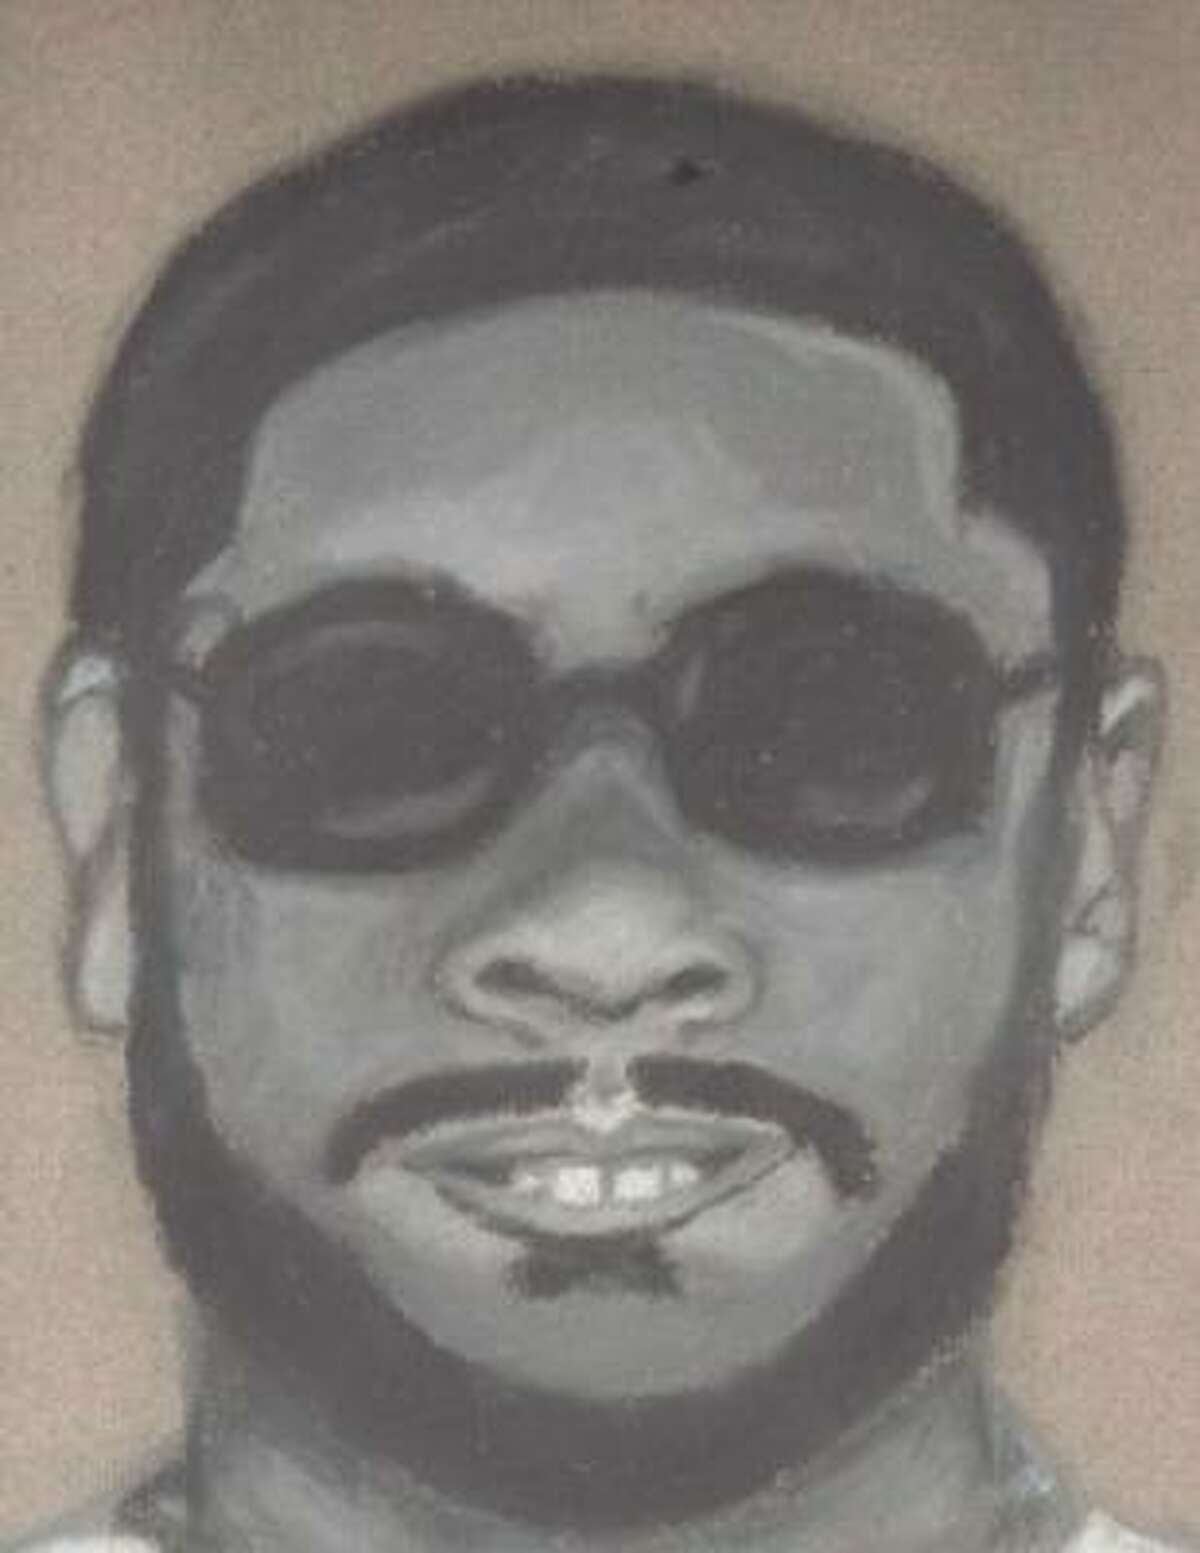 This sketch resembles the suspect in a sexual attack on a young boy in Rachell's neighborhood.